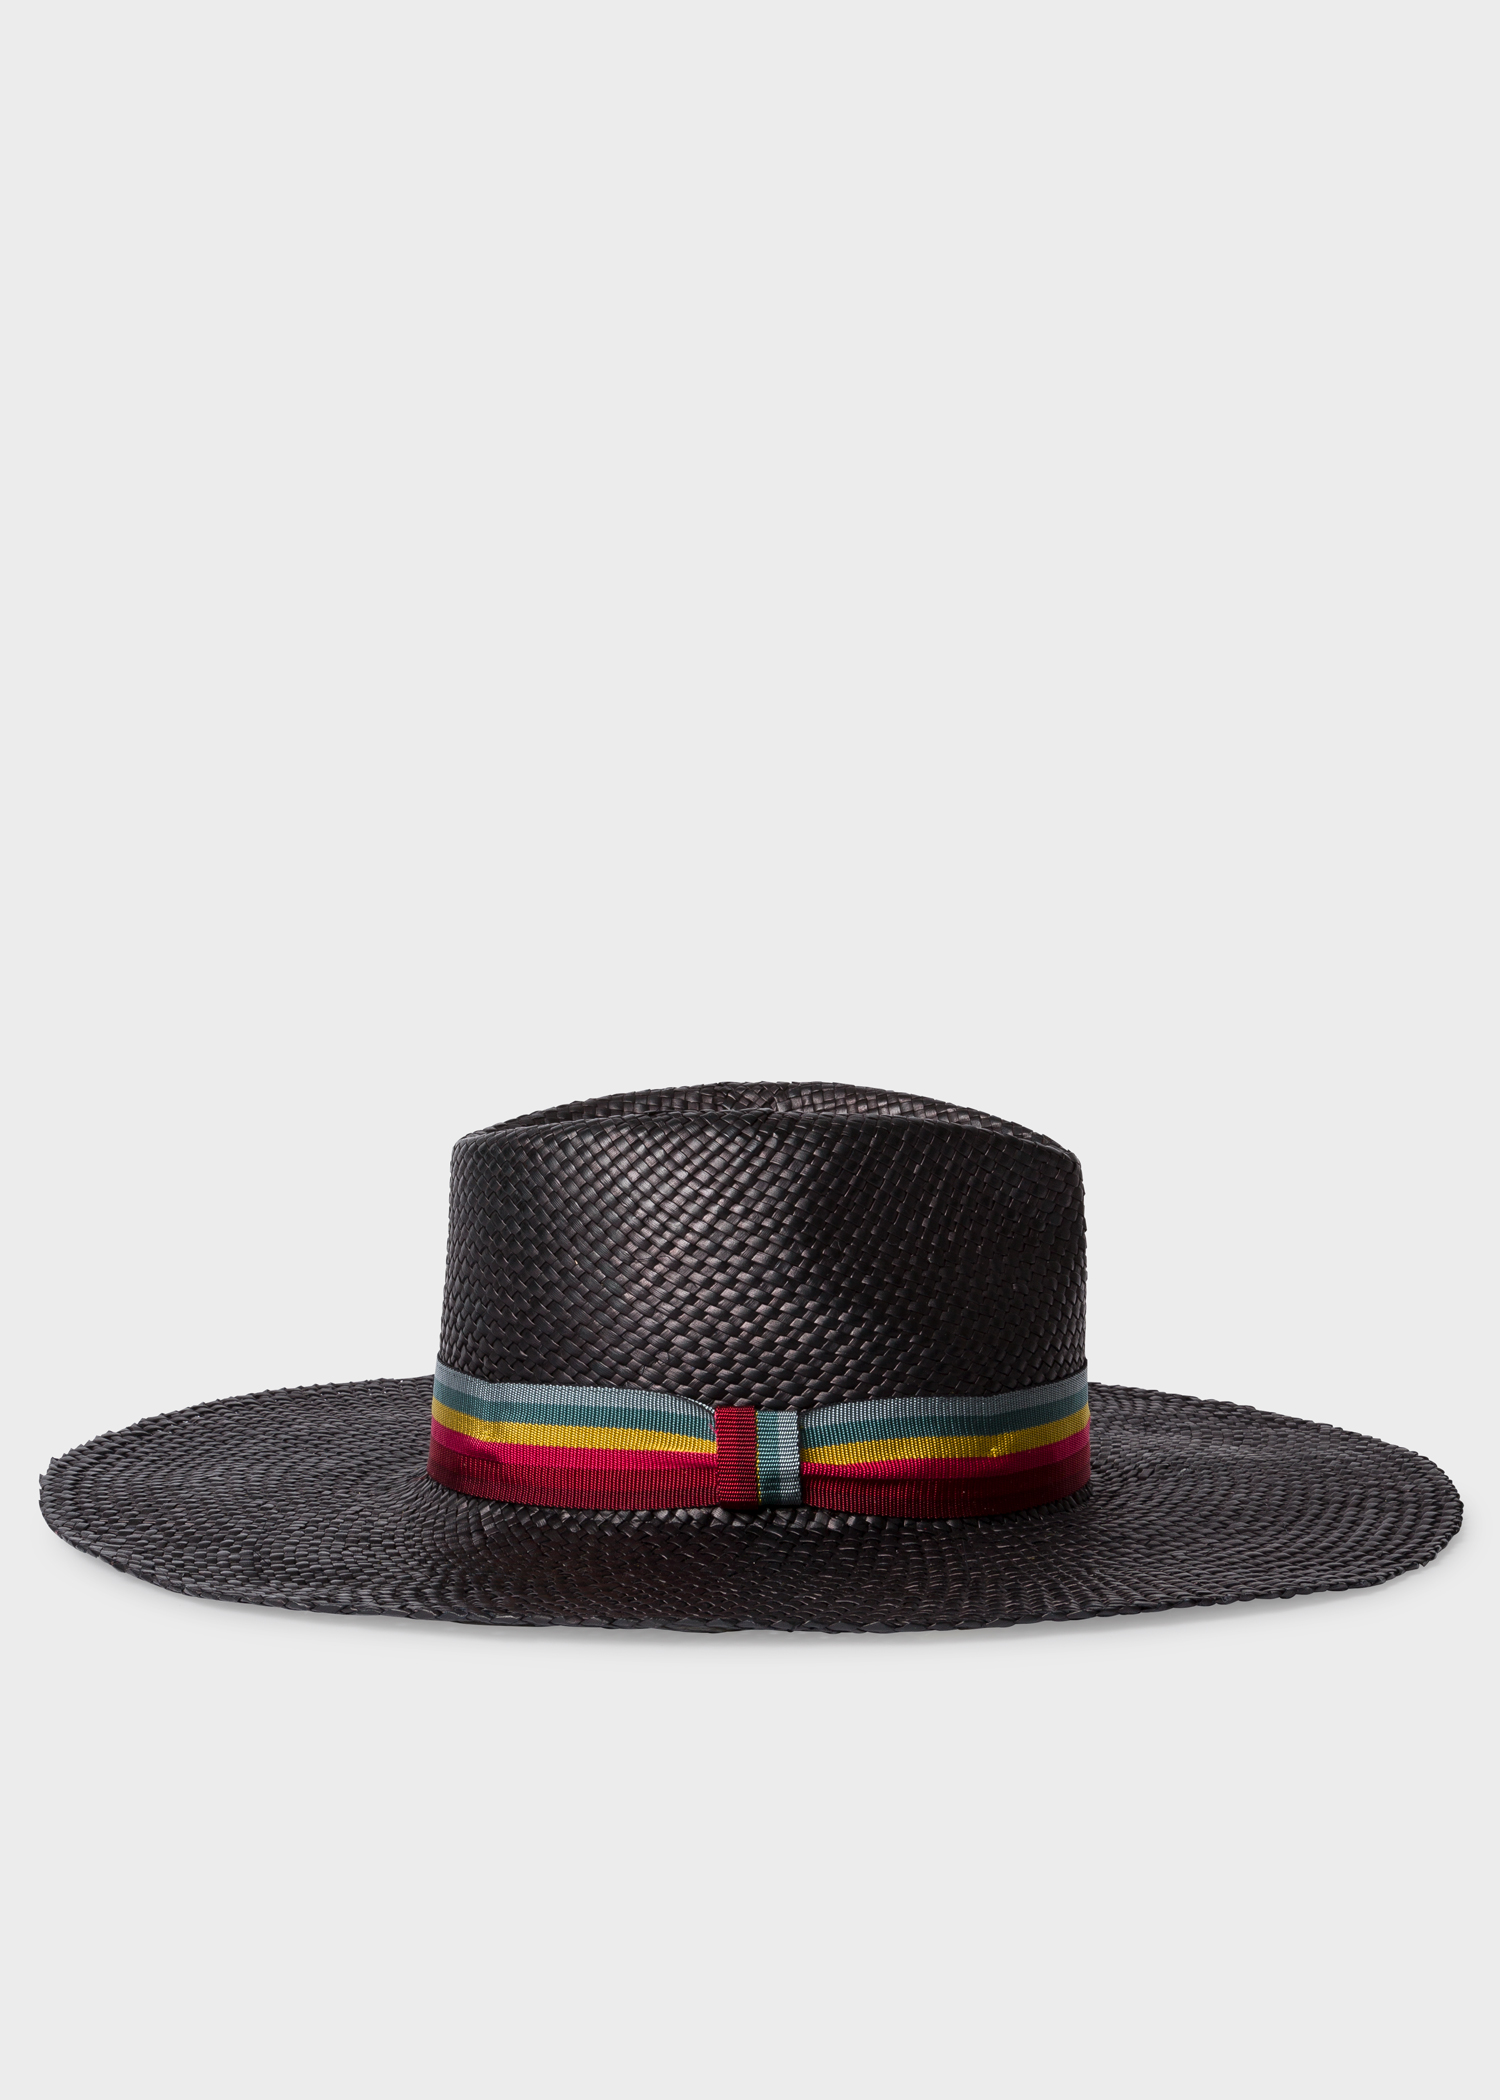 2816efe749755 Side view - Women s Black Woven Fedora Hat With  Swirl-Stripe  Band Paul